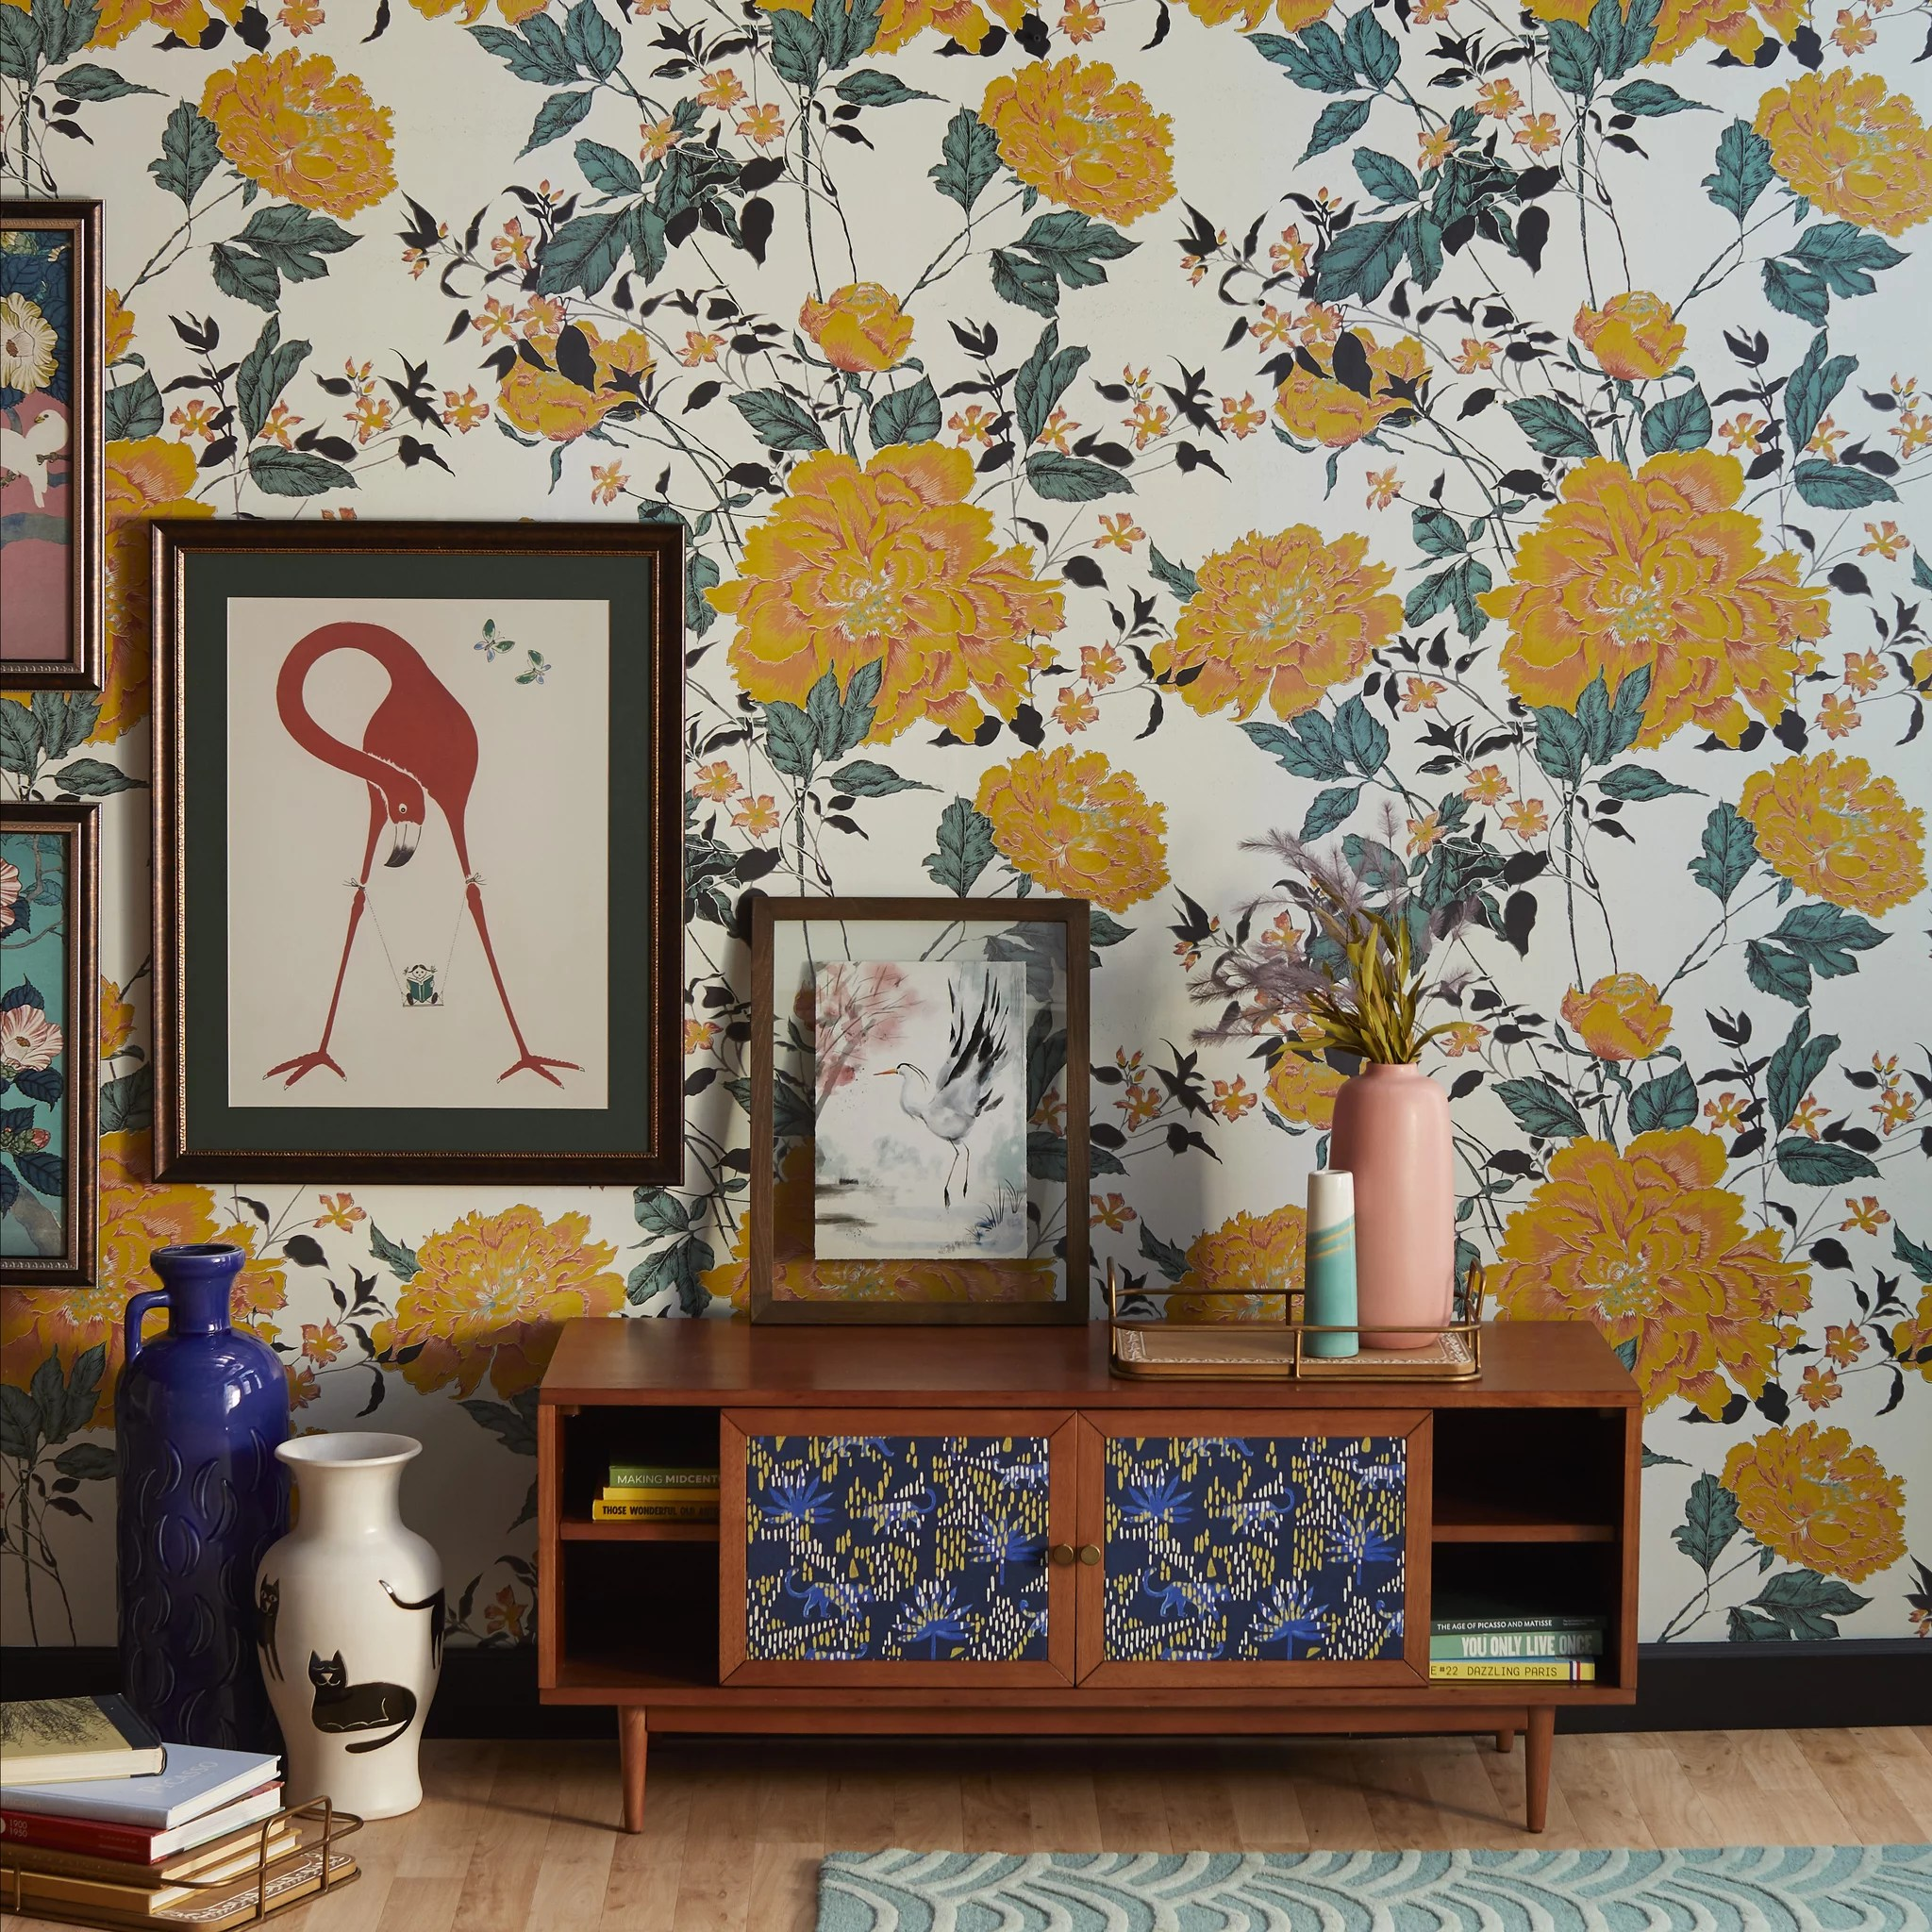 Yellow Vintage Floral Peel And Stick Wallpaper Drew Barrymore S Home Line Has New Peel And Stick Wallpaper And It S So Affordable Popsugar Home Photo 3